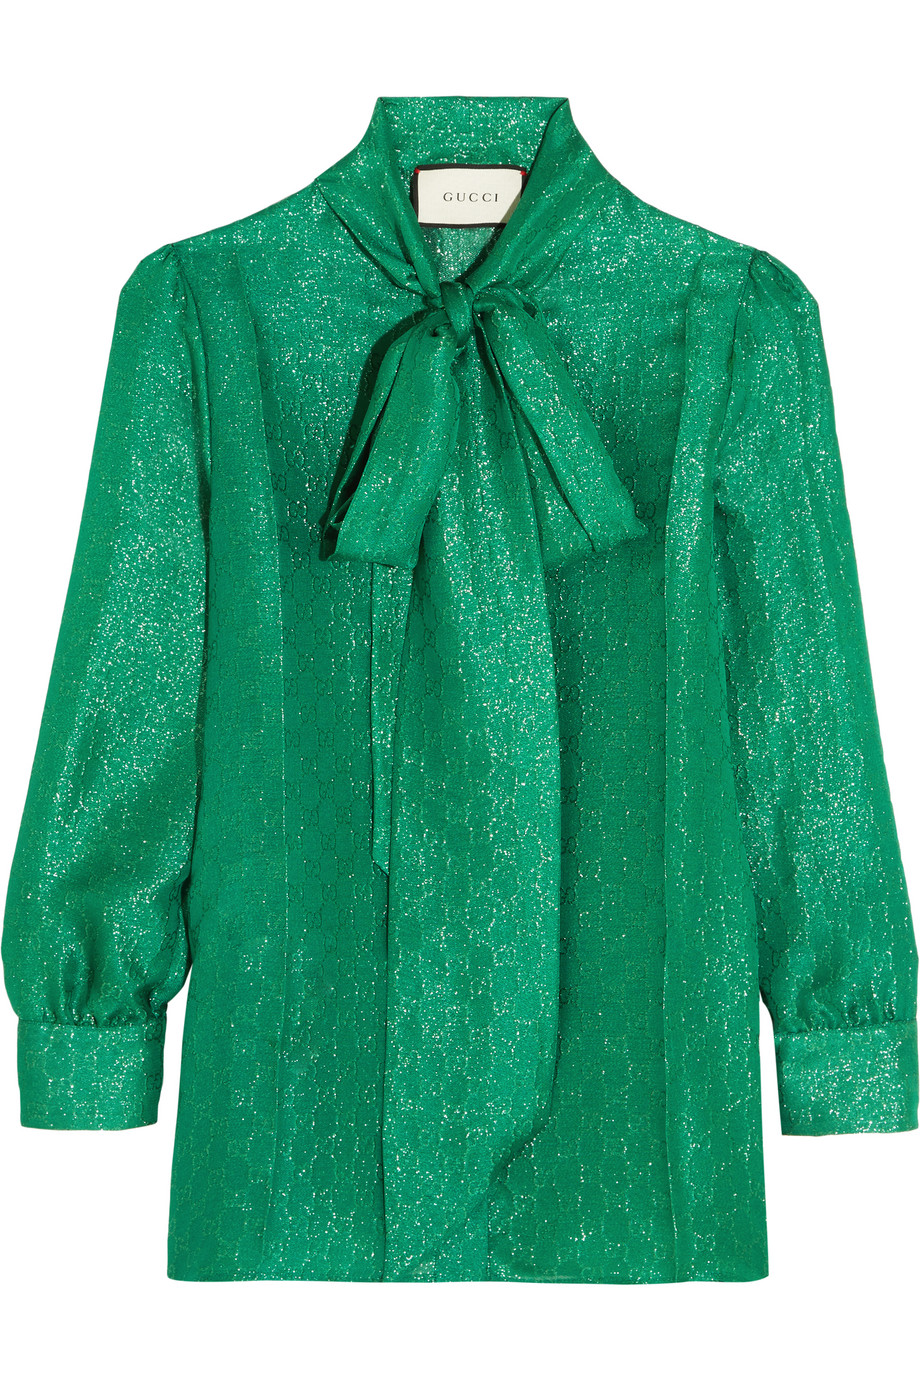 Gucci Pussy-Bow Metallic Silk-Blend Jacquard Blouse, Jade, Women's, Size: 36